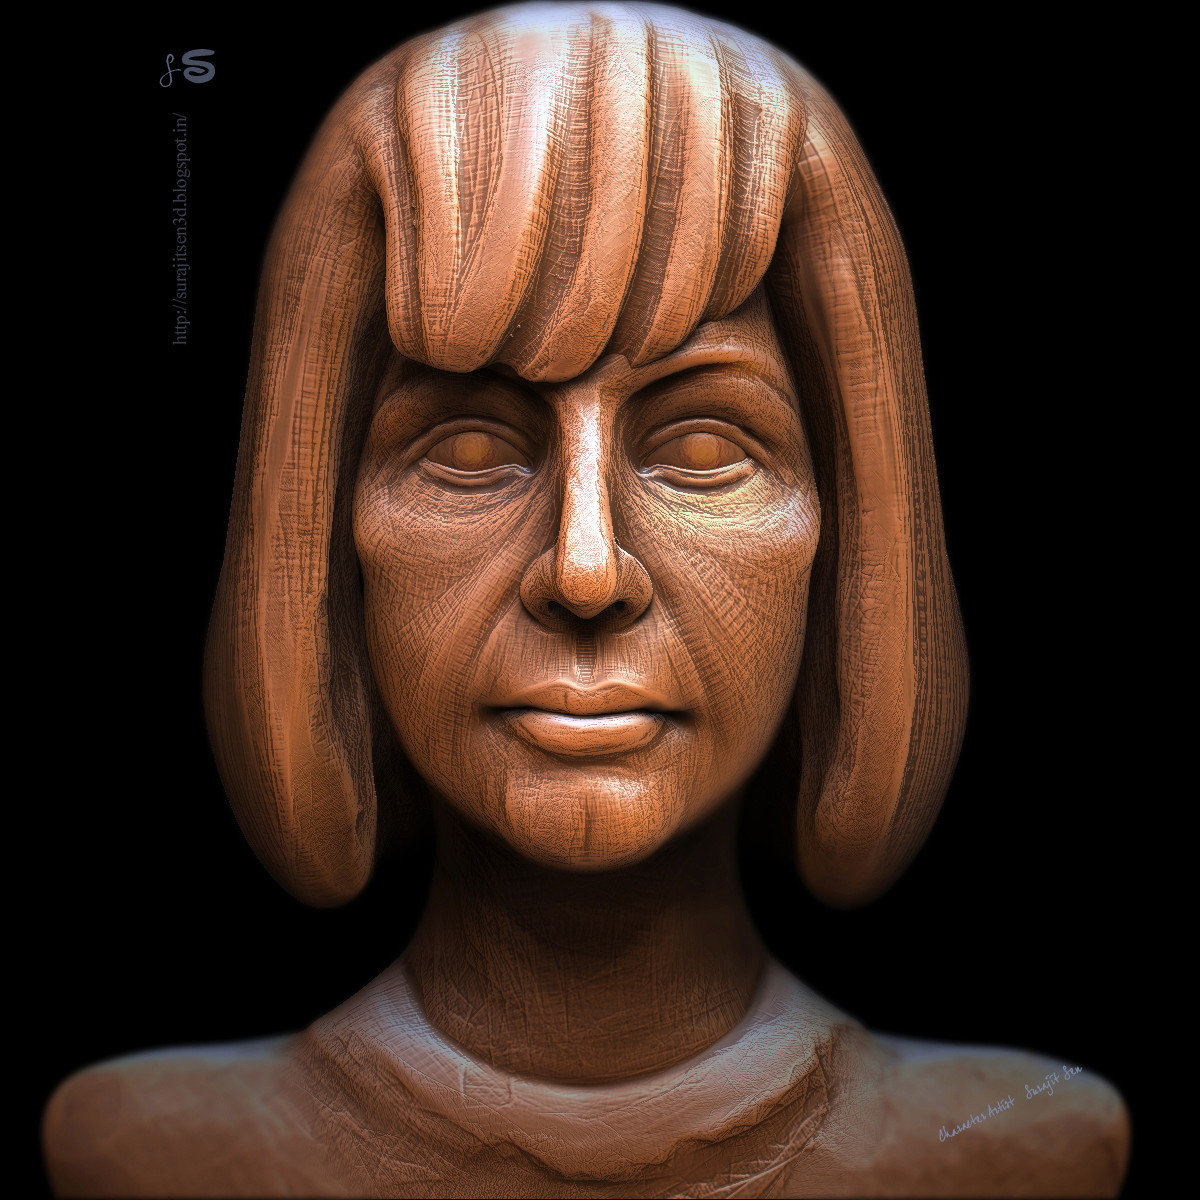 #doodle #quicksculpt My weekend speed sculpt. Played with brushes..:) Wish to share...